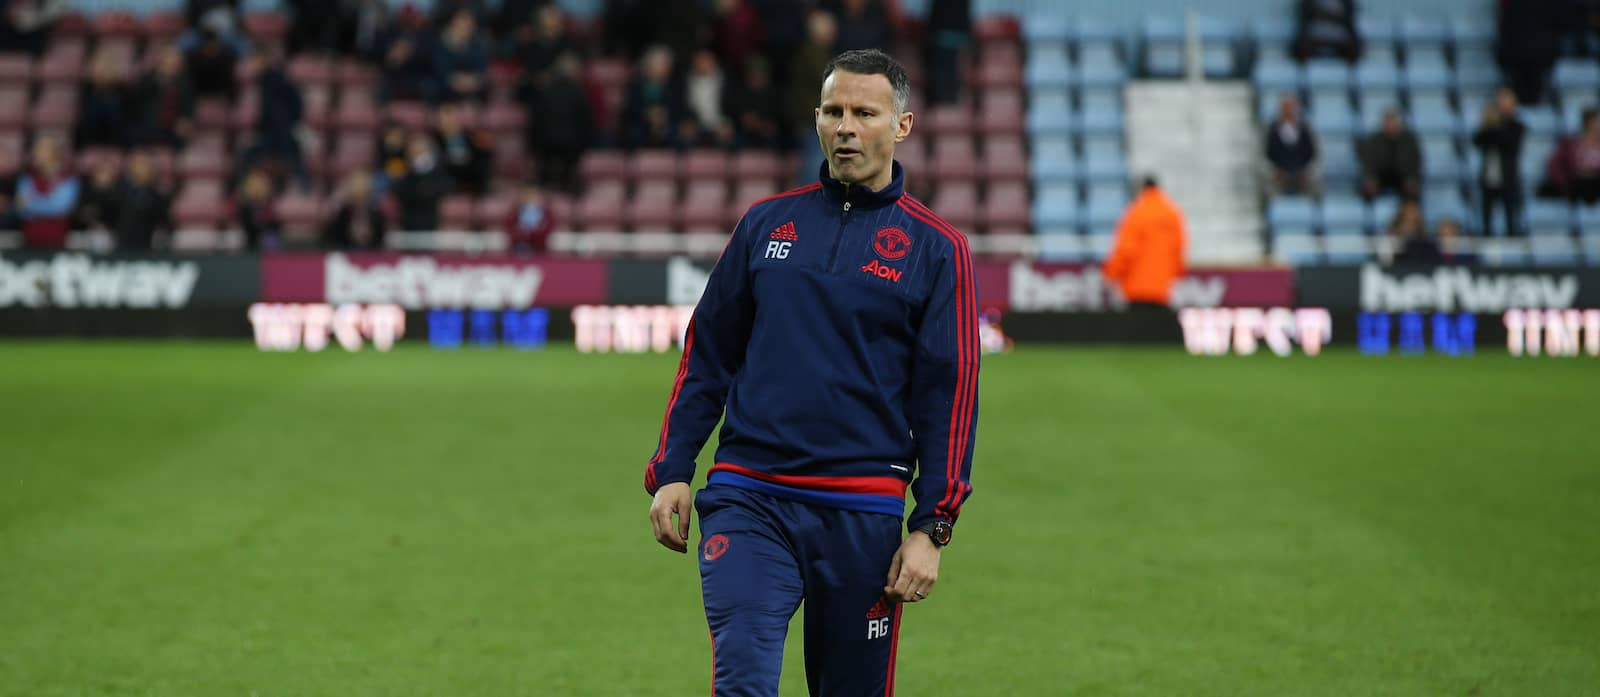 Ryan Giggs set for Manchester United talks with Jose Mourinho next week – report